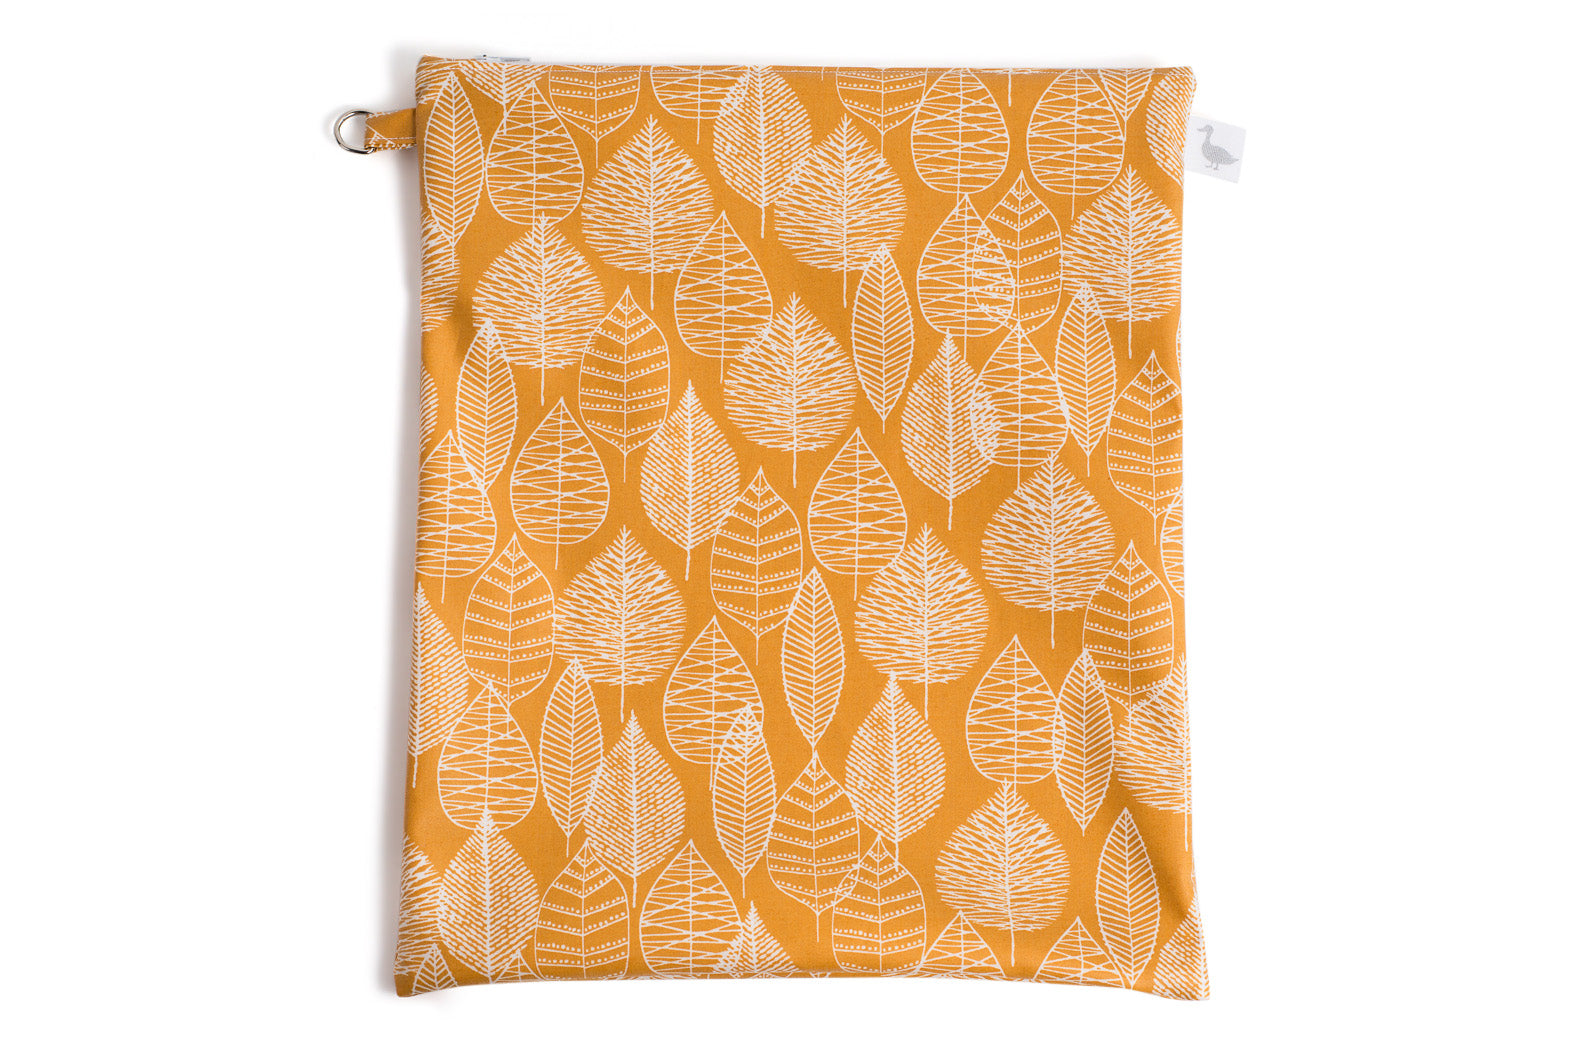 Large Sized Zipper Topped Bag - Mustard Fabric with White Leaf Line Drawings